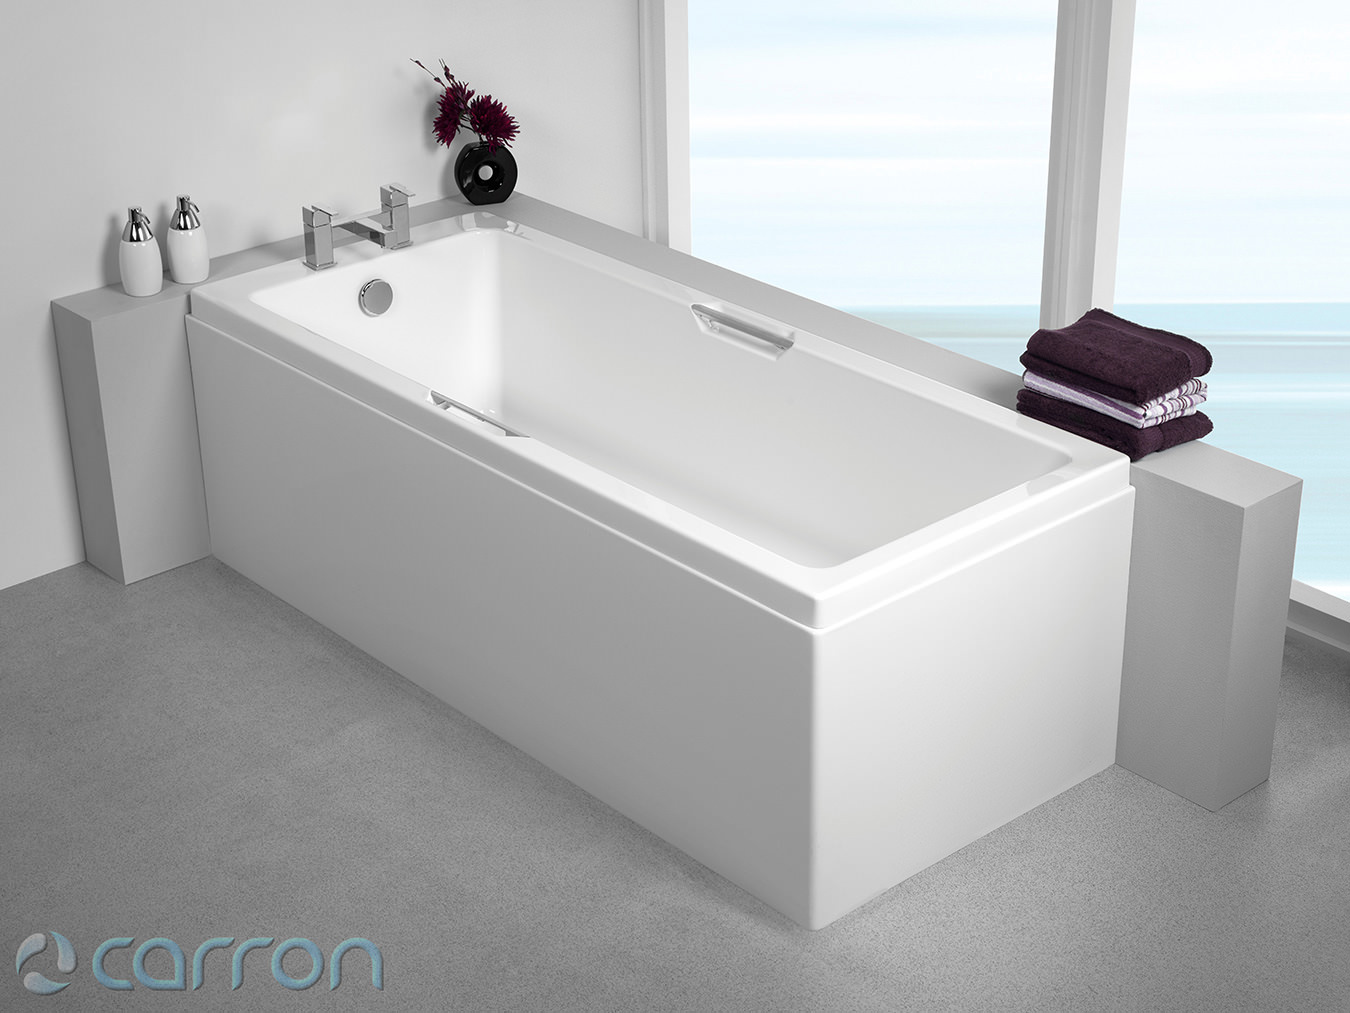 Carron Quantum Integra Single Ended Acrylic Bath 1700 X 700mm Q4 02169